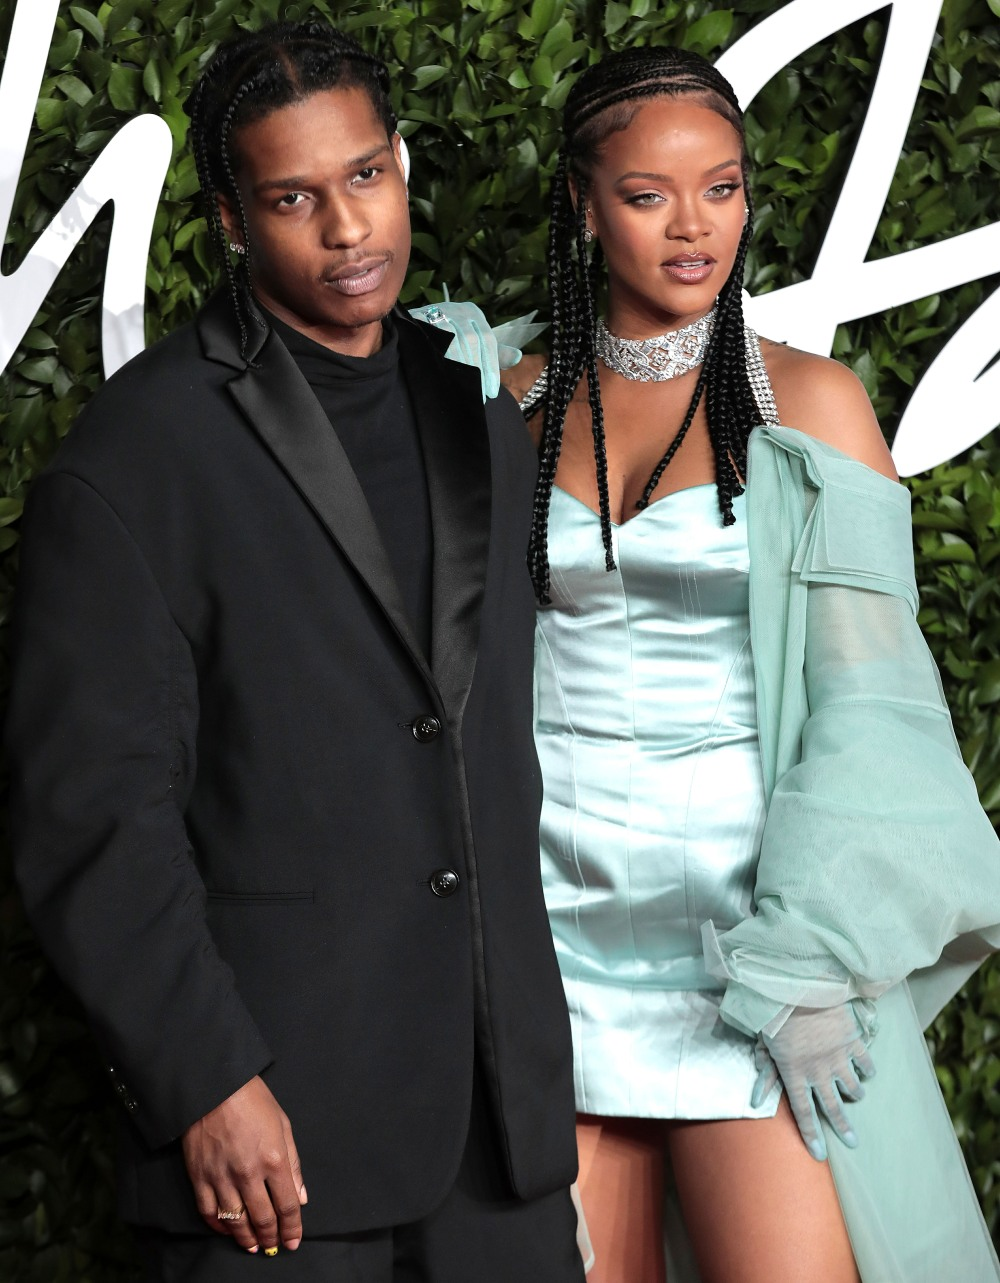 Rihanna has been spending time with A$AP Rocky & Drake, what could go wrong